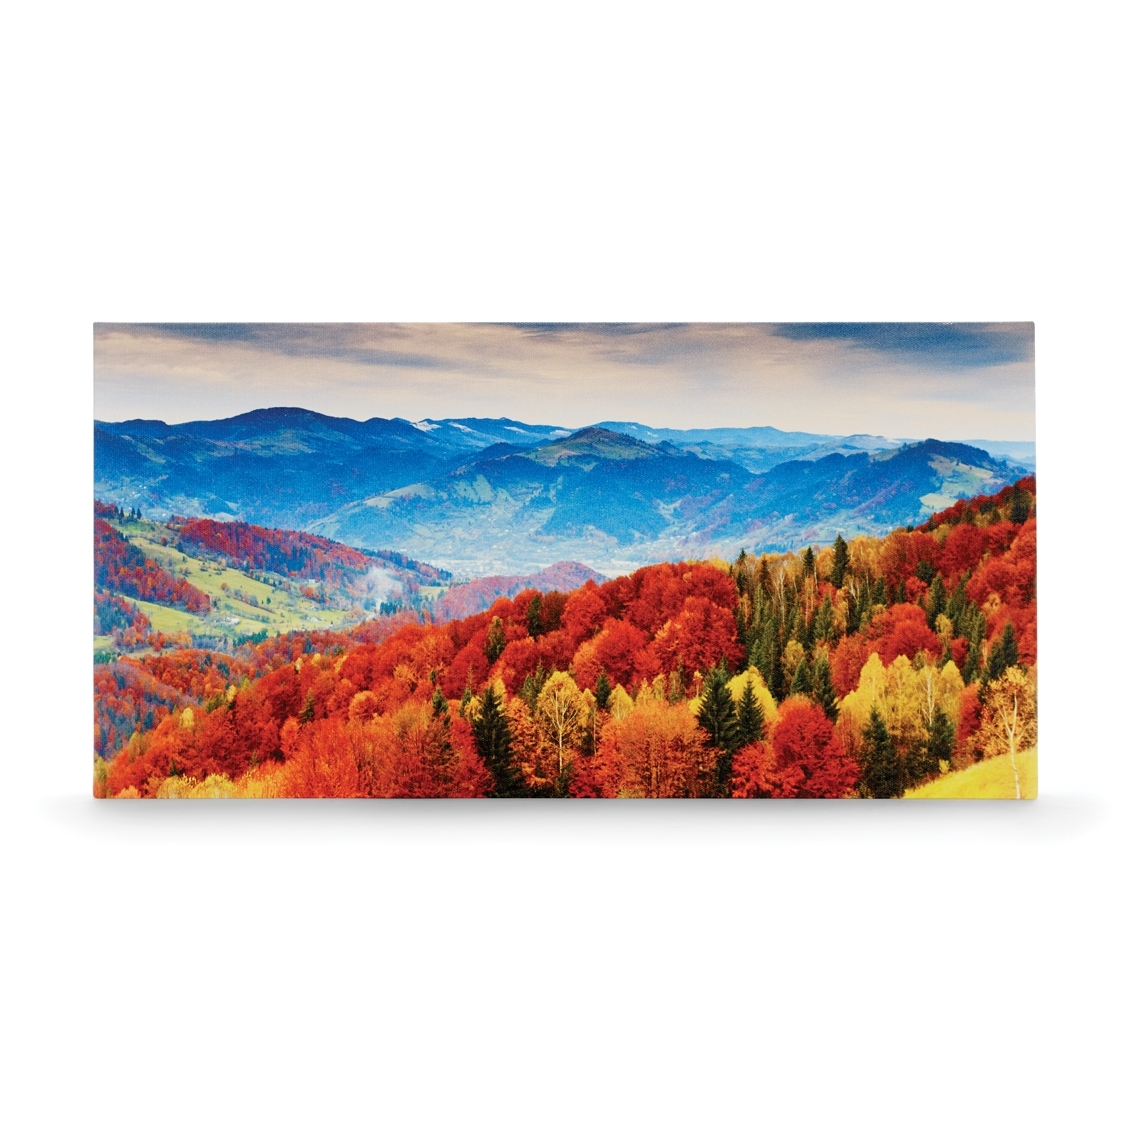 Framed Panoramic Canvas Print, 10X20 Black | Panoramic Canvas With Regard To Most Up To Date Panoramic Canvas Wall Art (View 3 of 15)